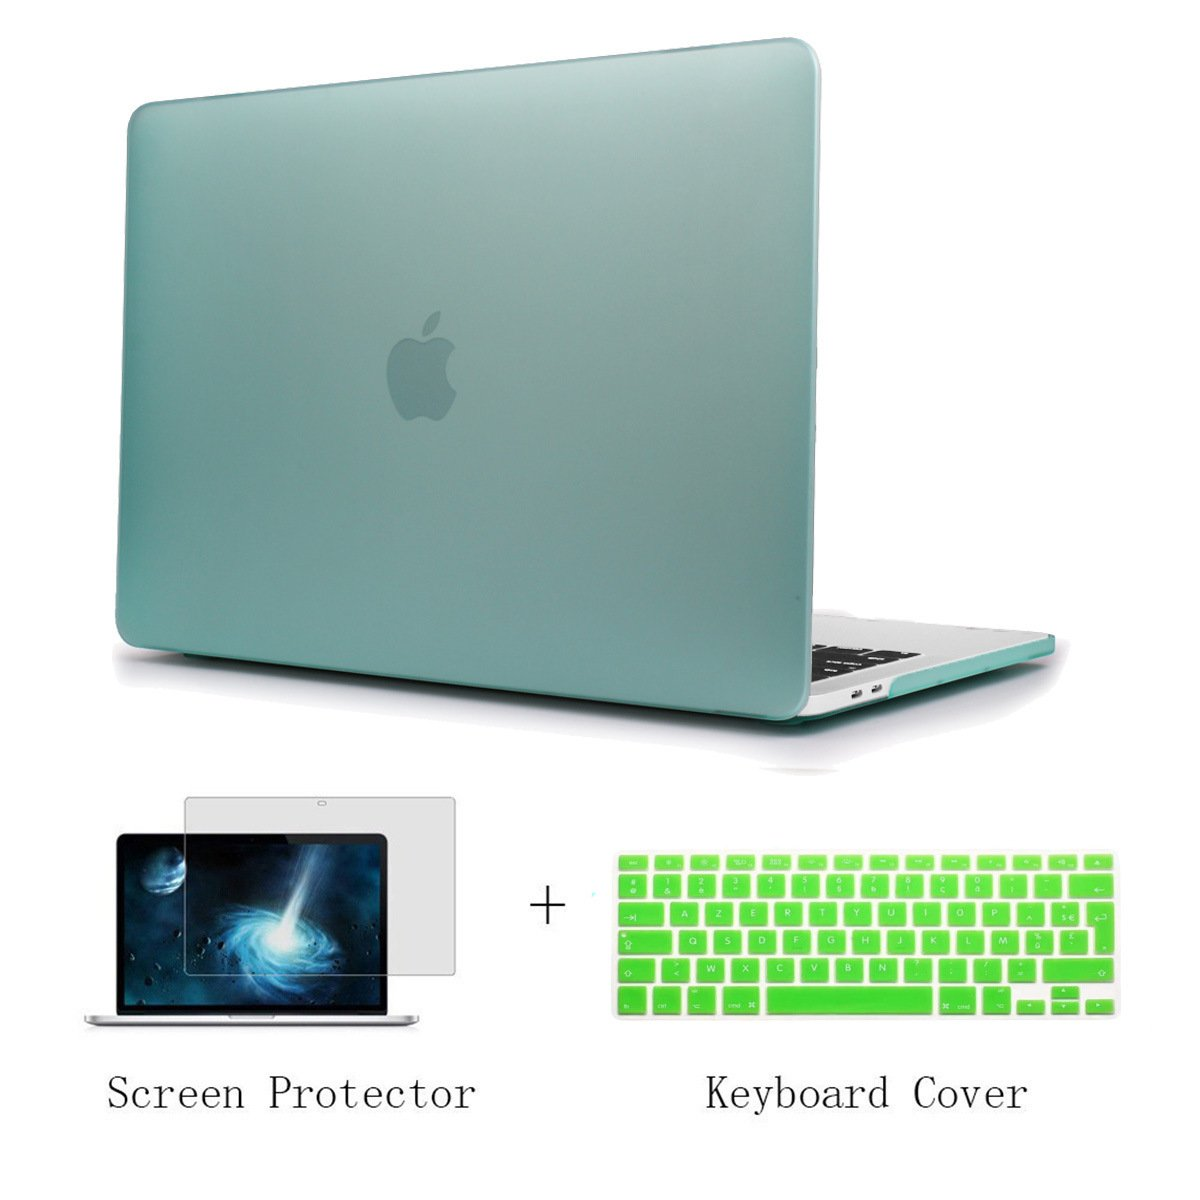 TwoL Coque MacBook Air 13, Coque Rigide Housse avec Clavier Coque de Protection pour MacBook Air 13 Pouces (Mat Transparent)